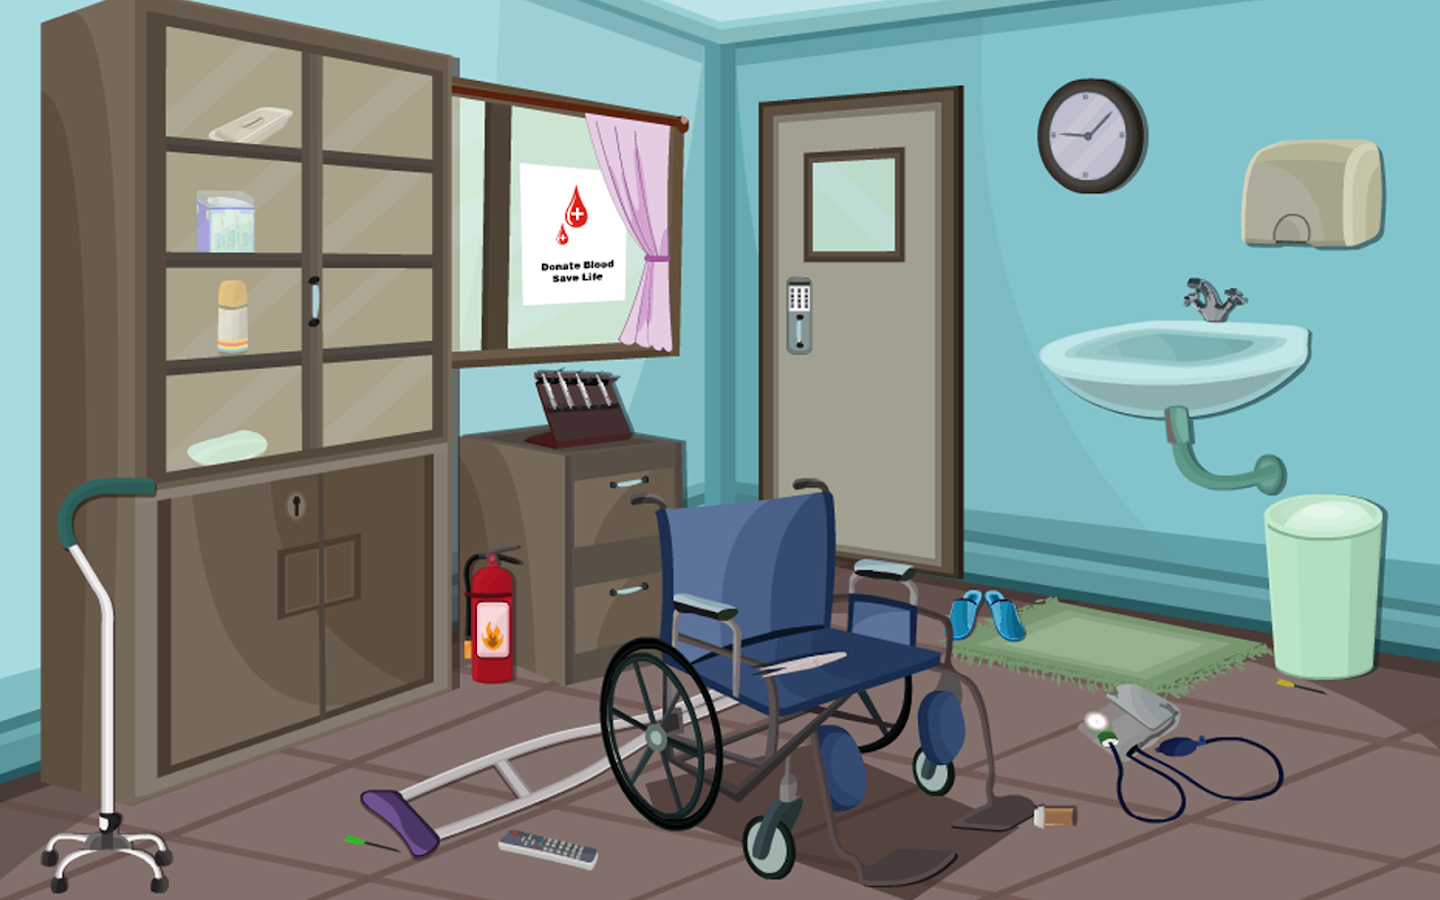 Escape Room Bathroom Level 1 escape puzzle hospital rooms - android apps on google play